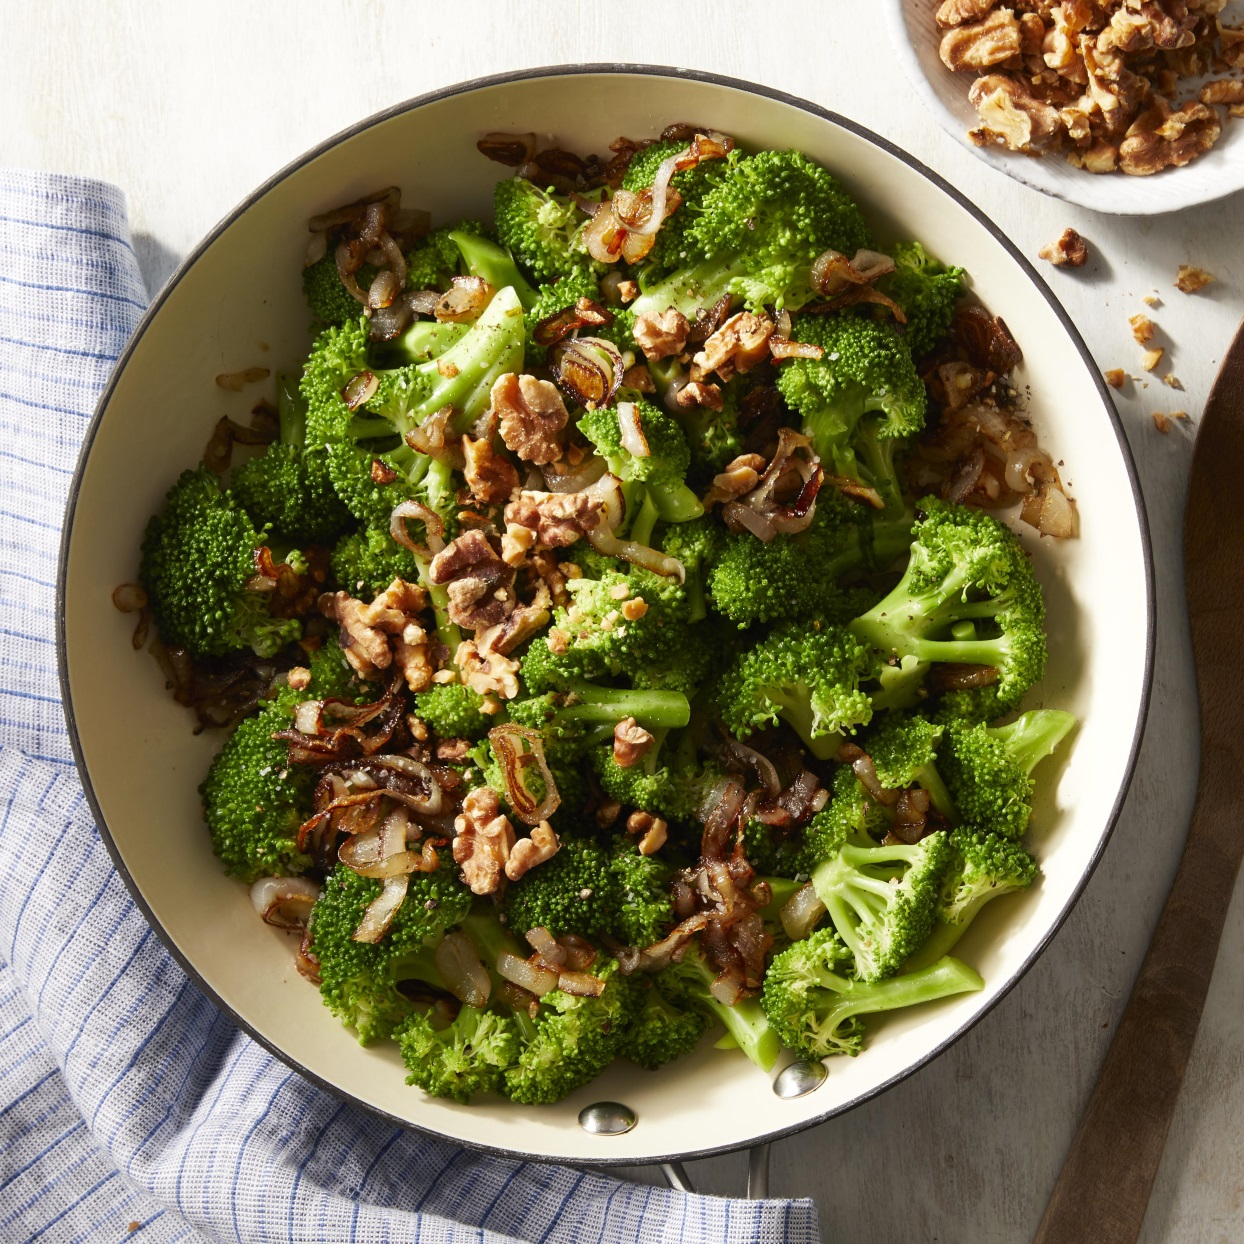 Broccoli with Caramelized Shallots